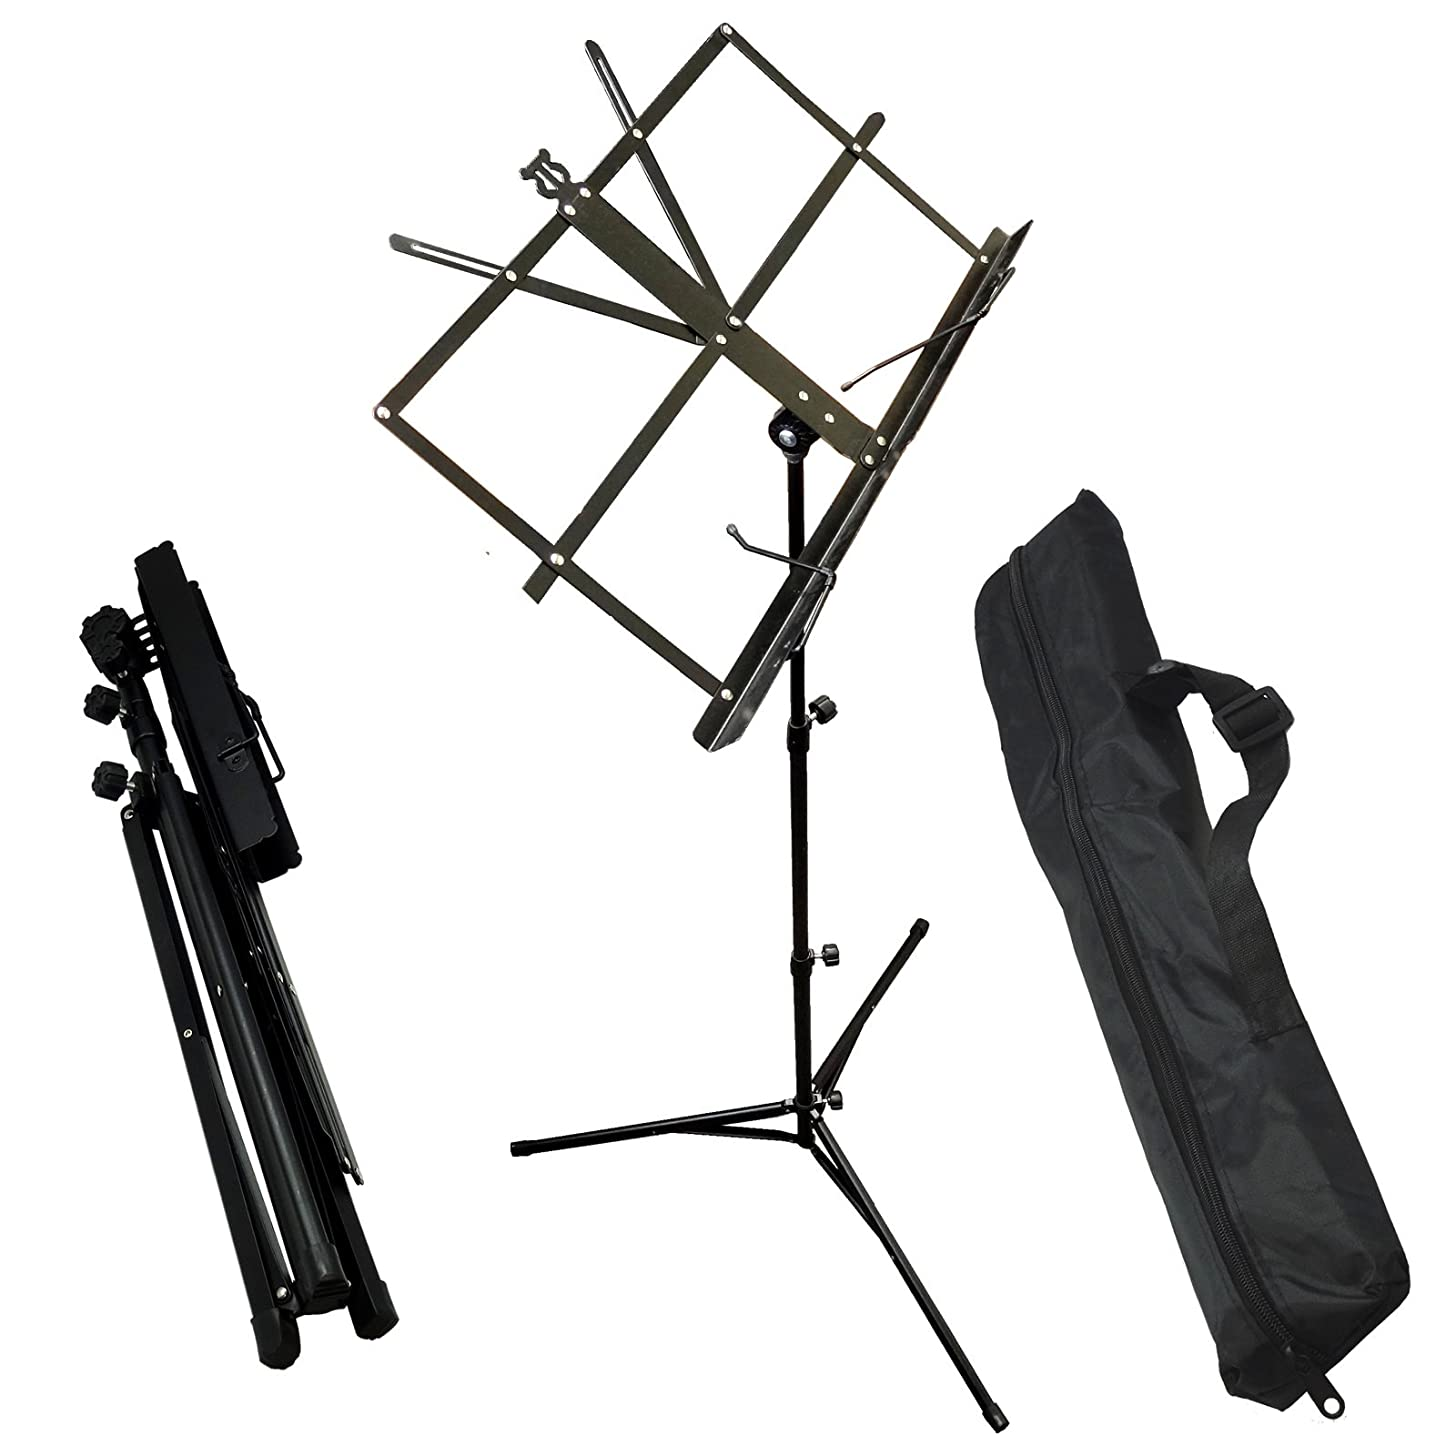 BlueDot Trading music-stand-collapsible Collapsible Folding Portable Music Stand, Steel Black